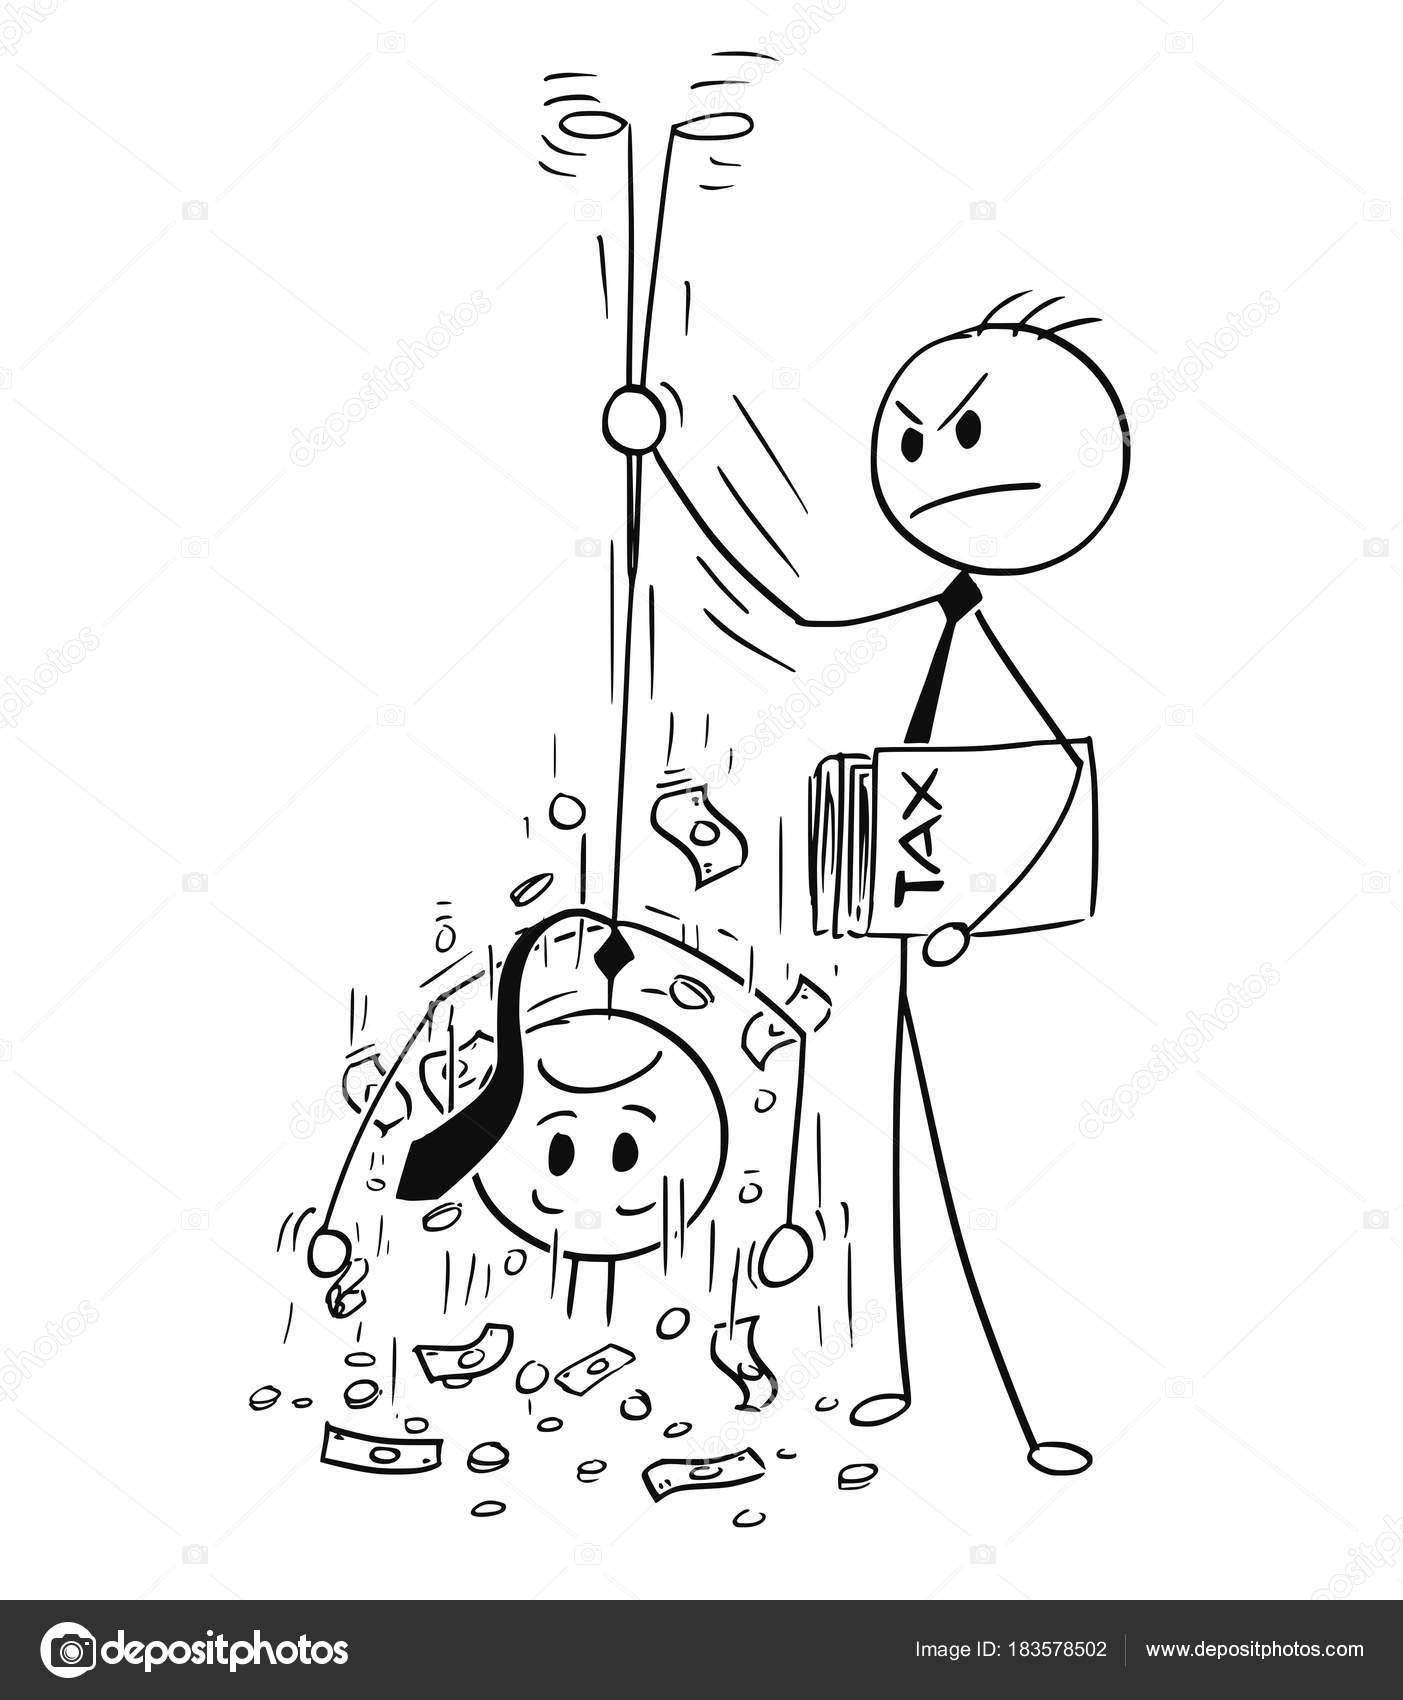 1403x1700 Cartoon Of Taxation Clerk Shaking Out Money For Tax